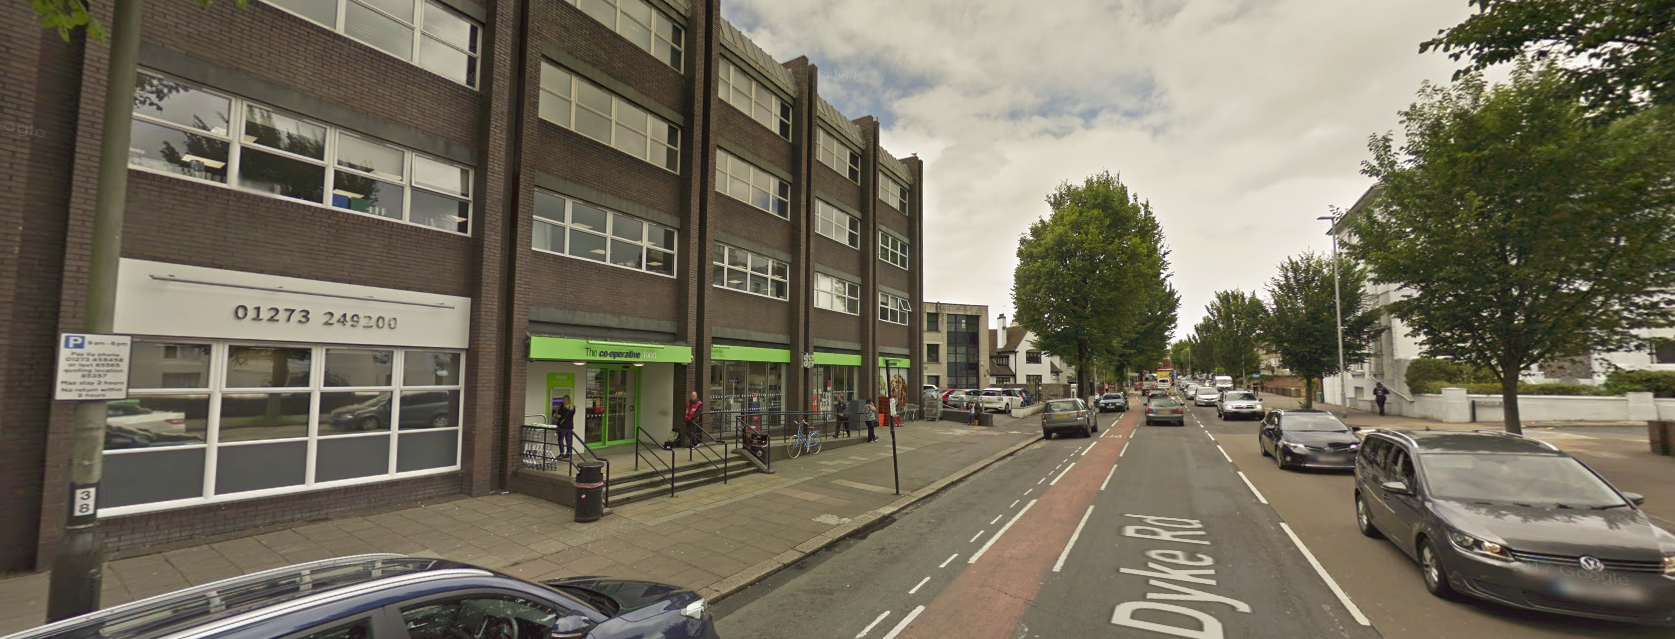 The Co-op store in Dyke Road, Hove. Picture: Google Street View